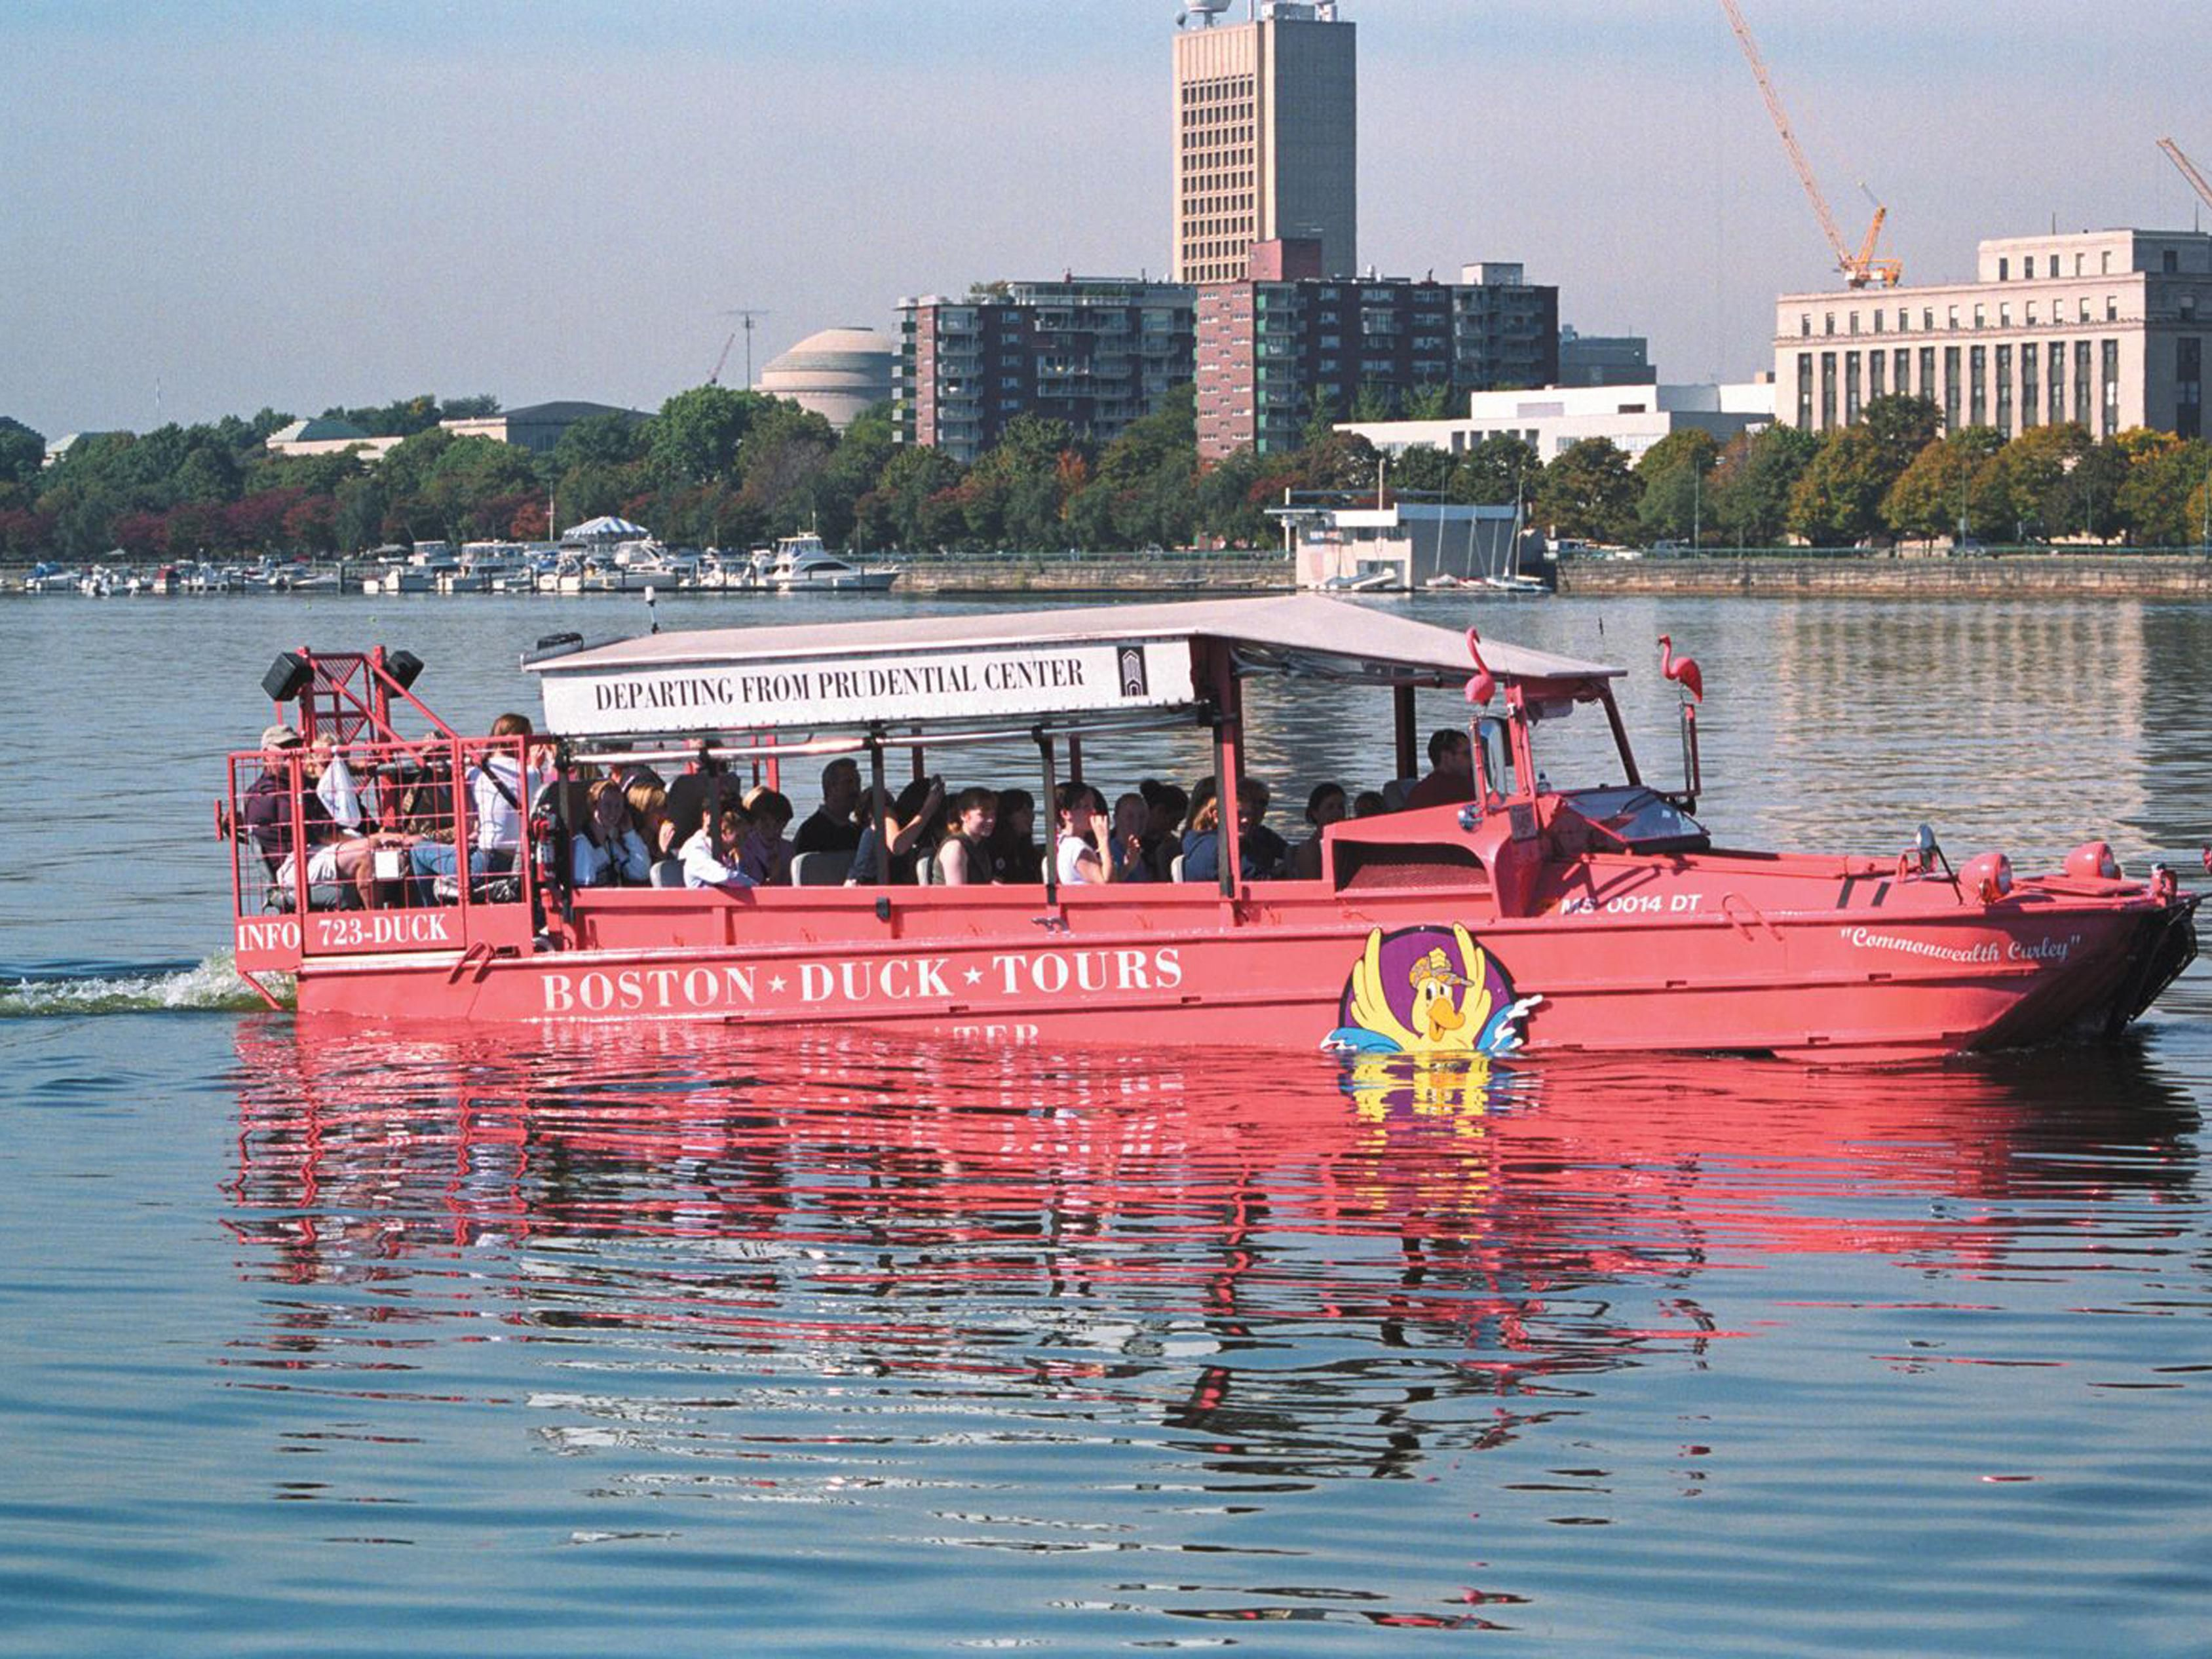 Enjoy a fun tour of Boston on a Duck Tour on the Charles River.